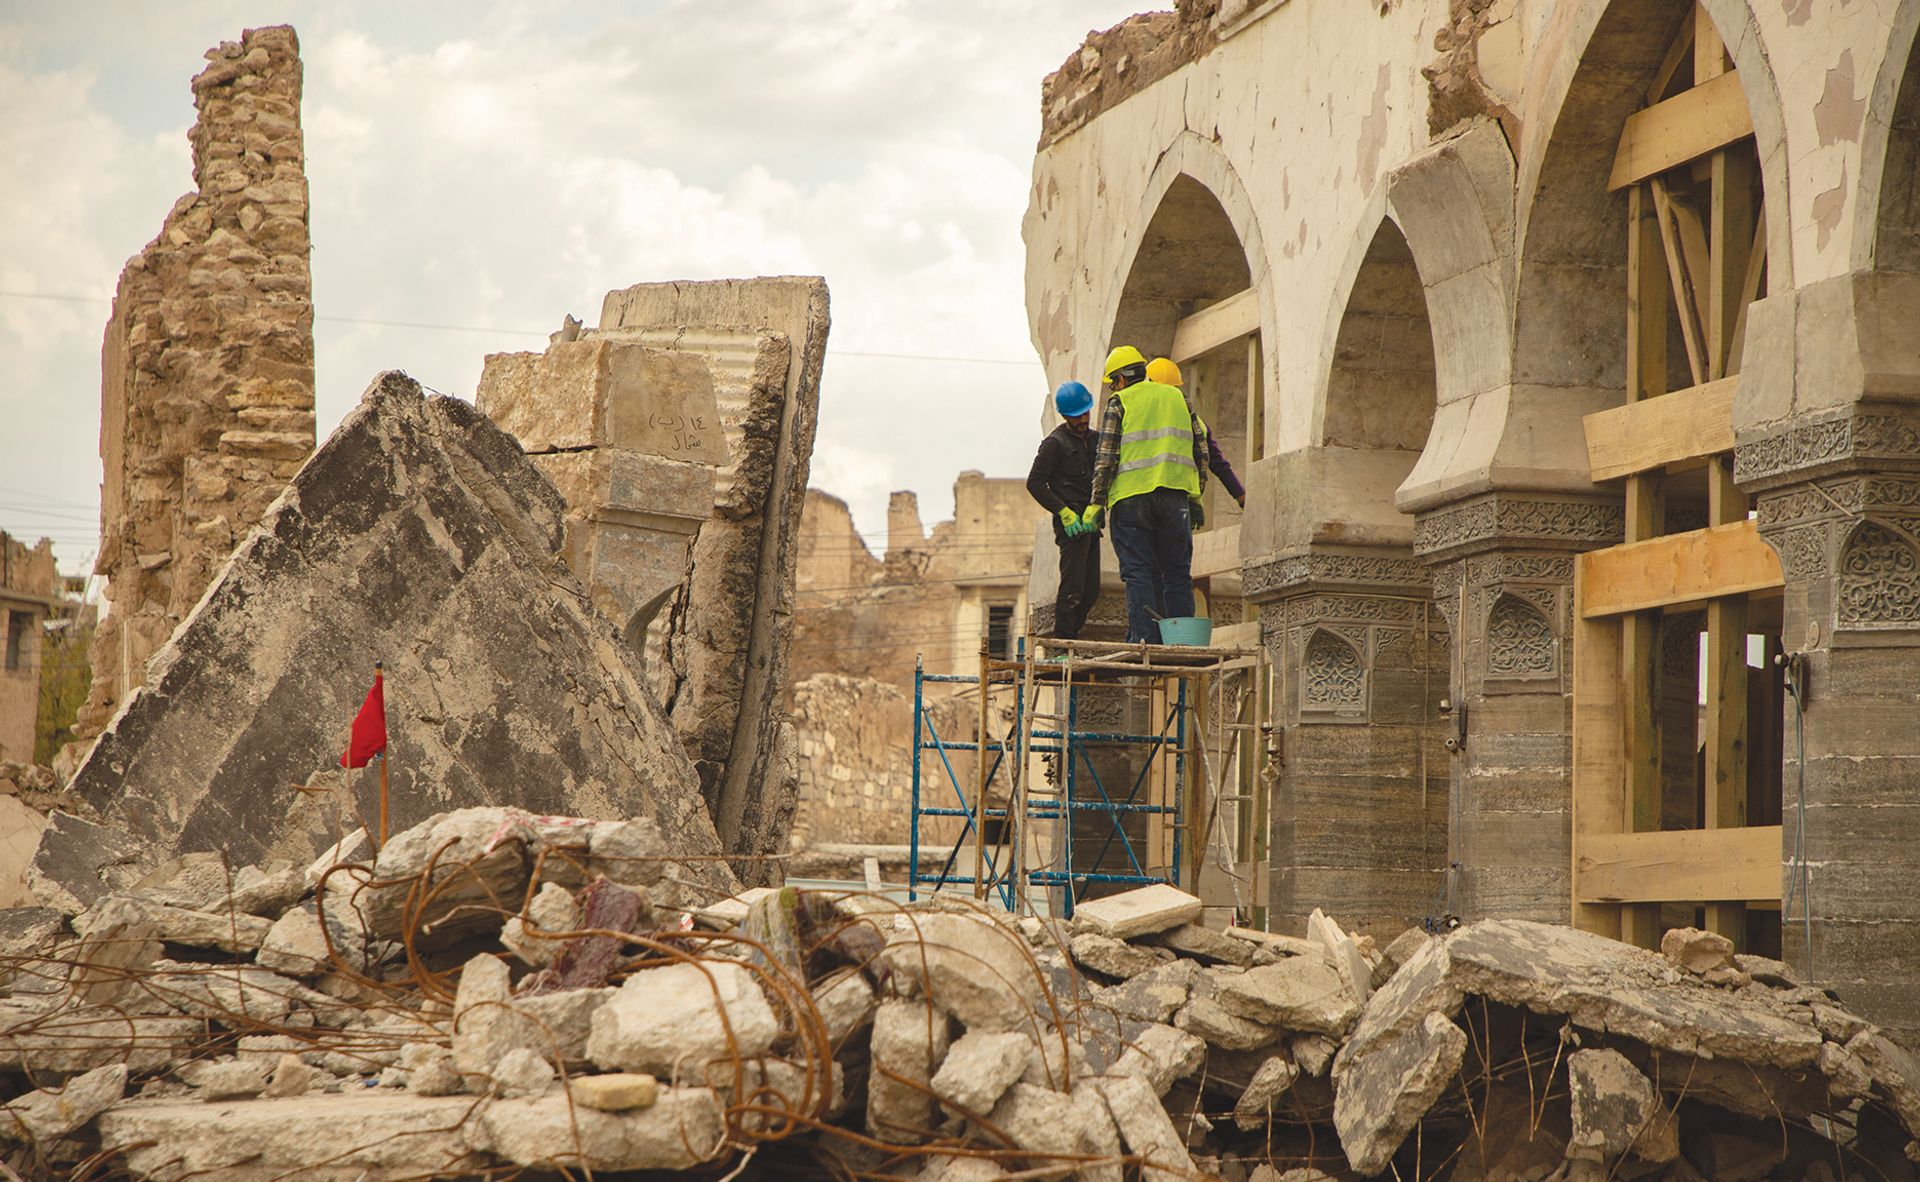 The Unesco-led projects include restoring Al-Nuri mosque, which was damaged when Islamic State was ousted from Mosul in 2017 Photo: © Unesco/Moamin Al-Obaidi